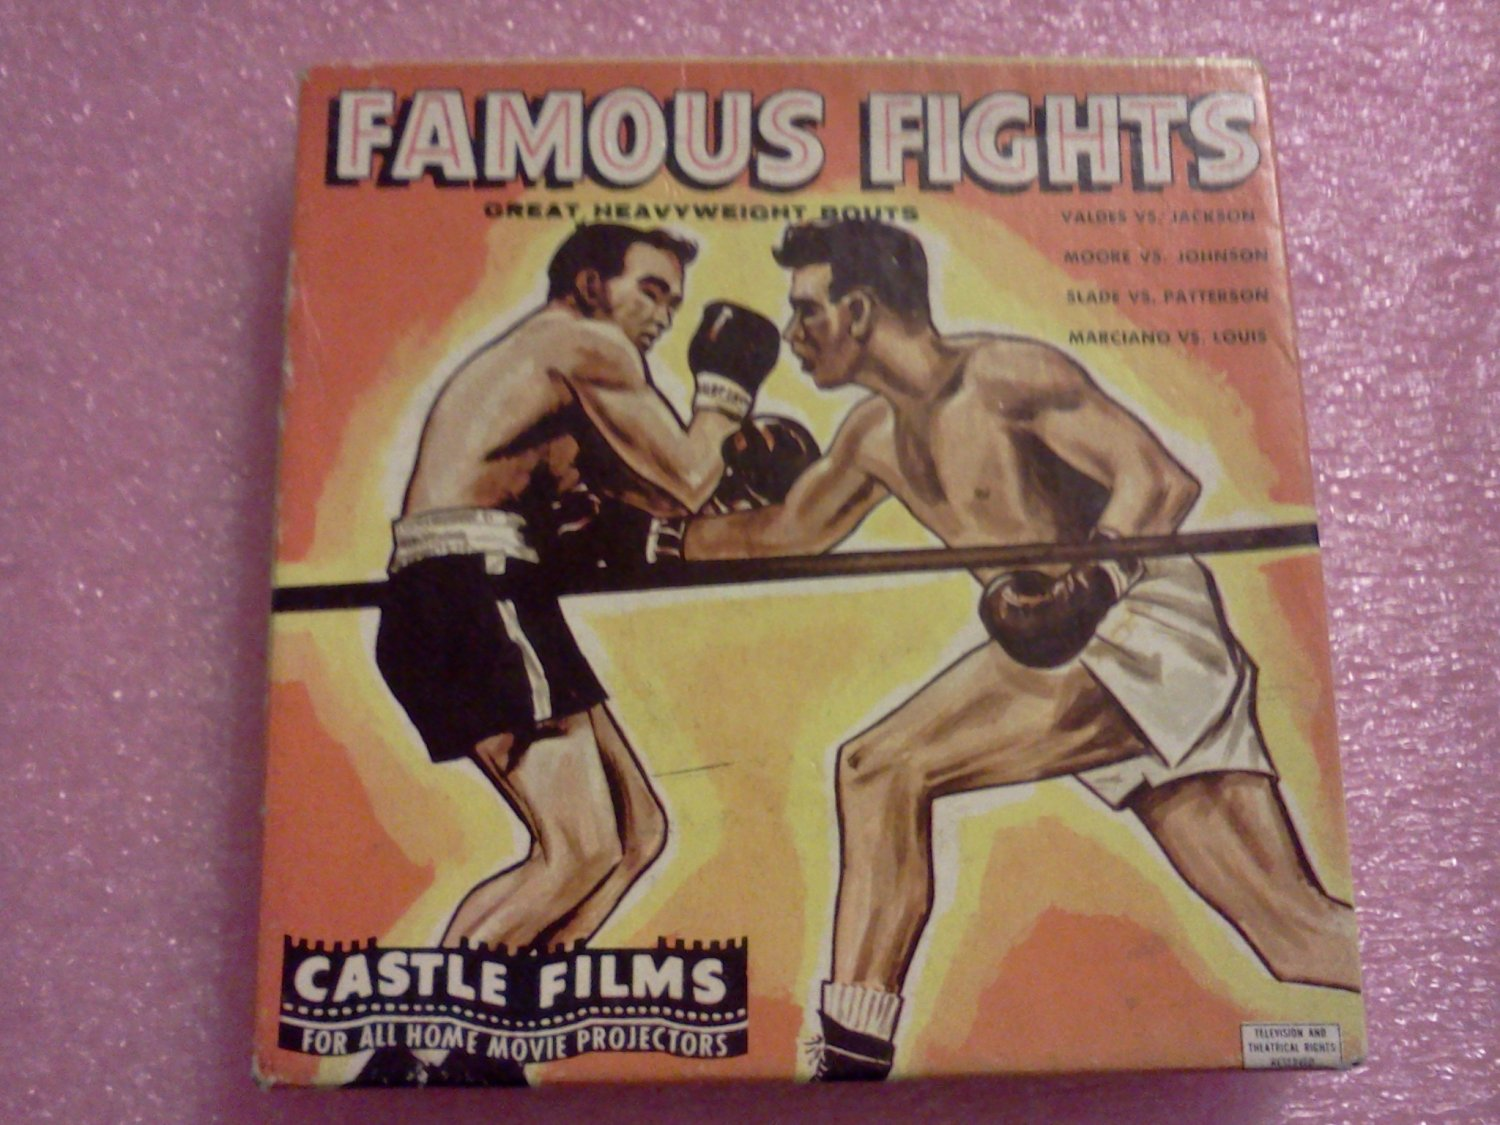 Famous Fights 8mm Castle Films Reel Vintage Heavyweight Boxing Marciano Vs Louis